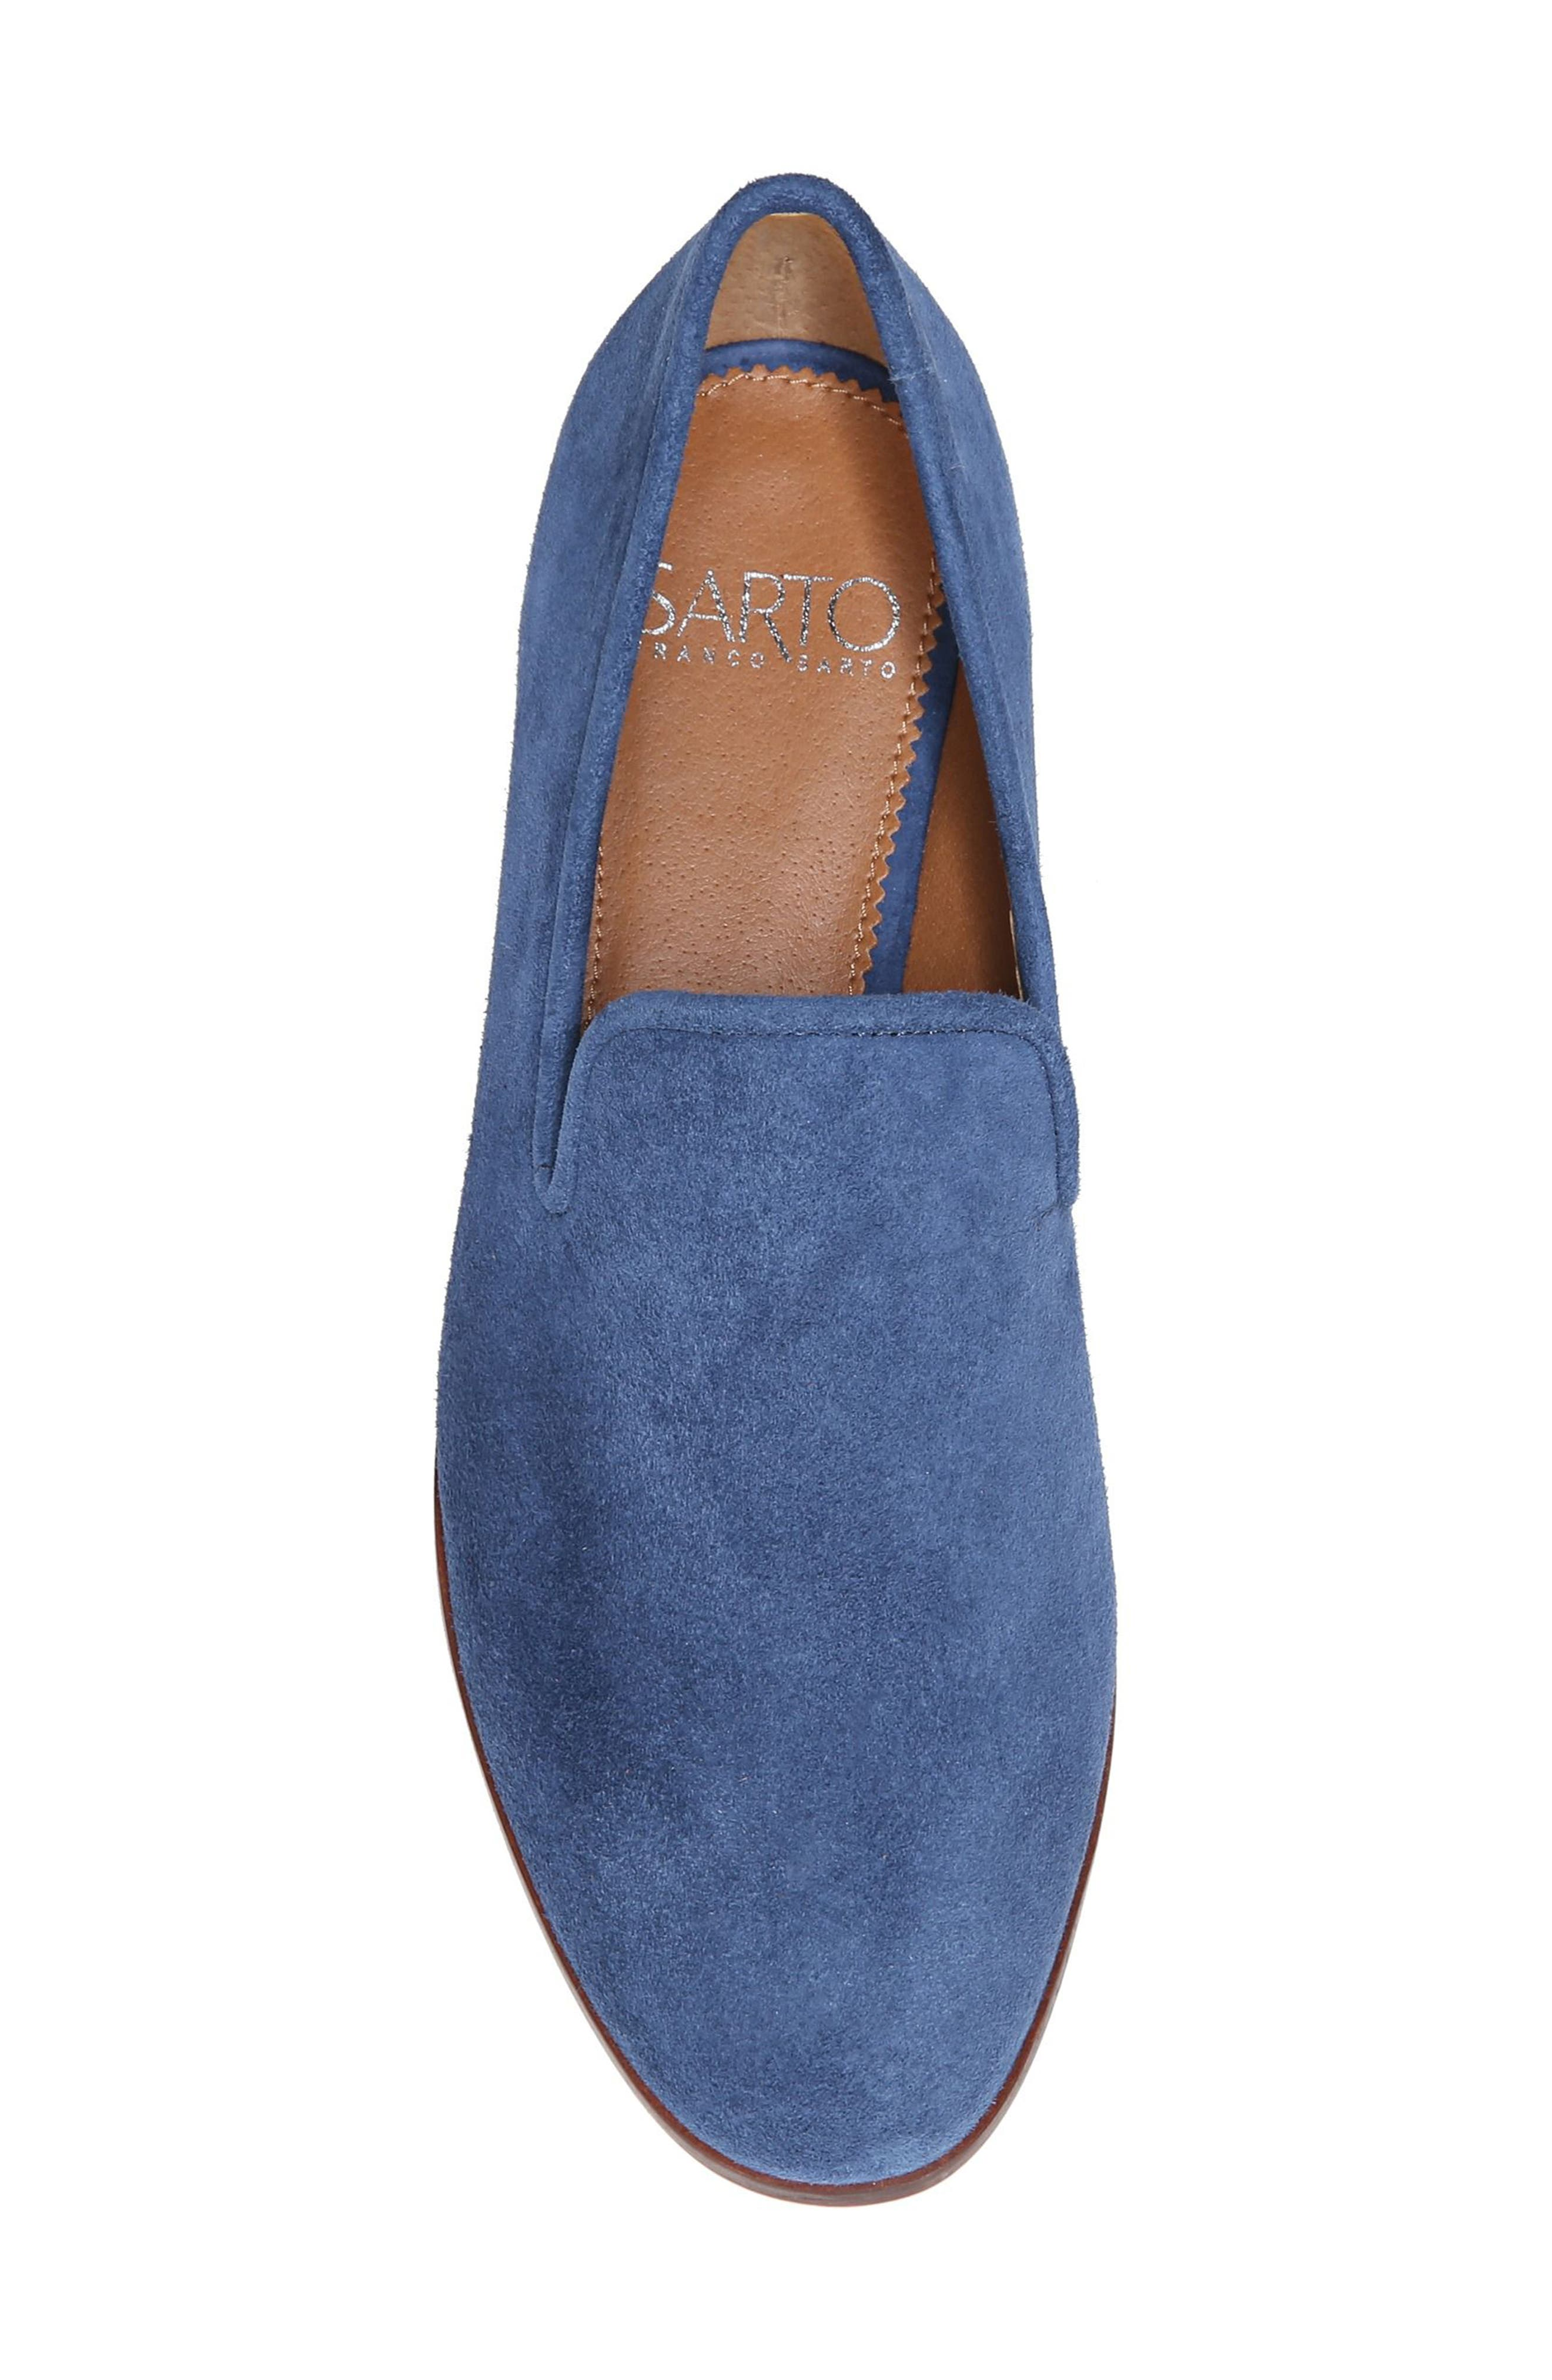 Ayers Loafer Flat,                             Alternate thumbnail 44, color,